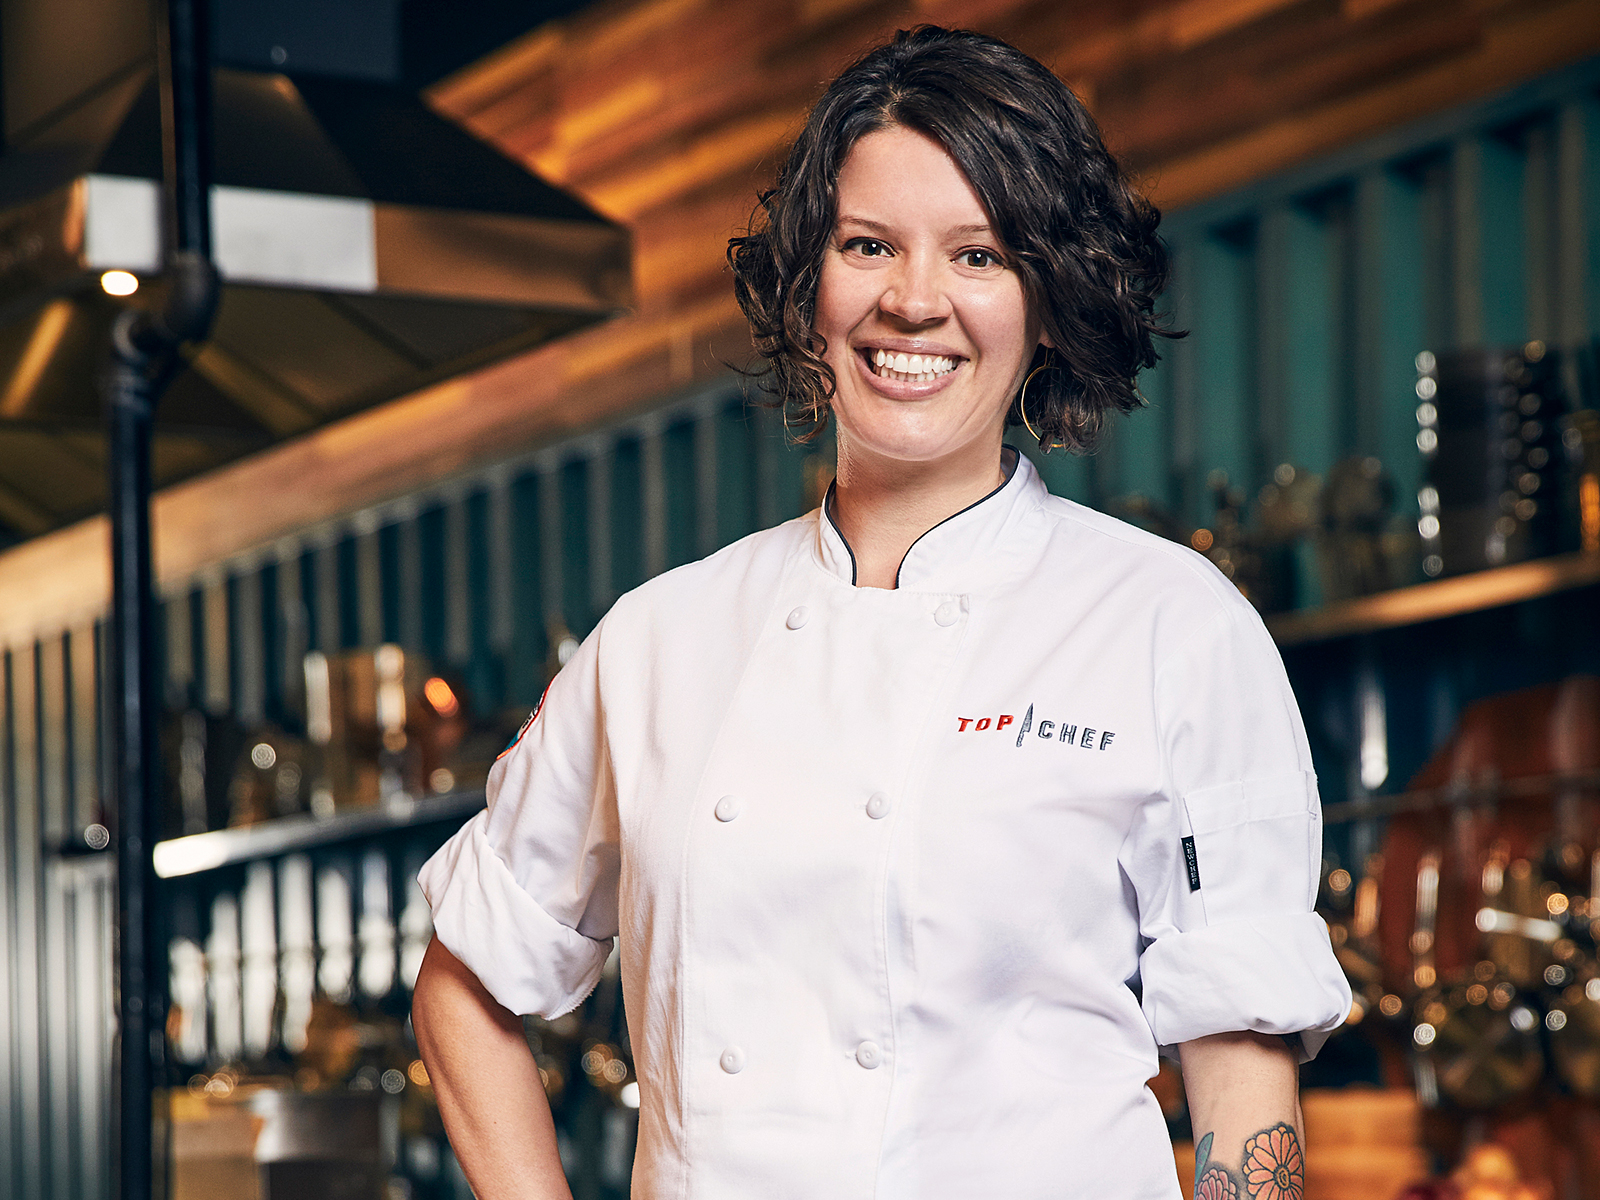 'Top Chef's' Carrie Baird on Her Fancy Toasts and Which Dishes She'd Do Over